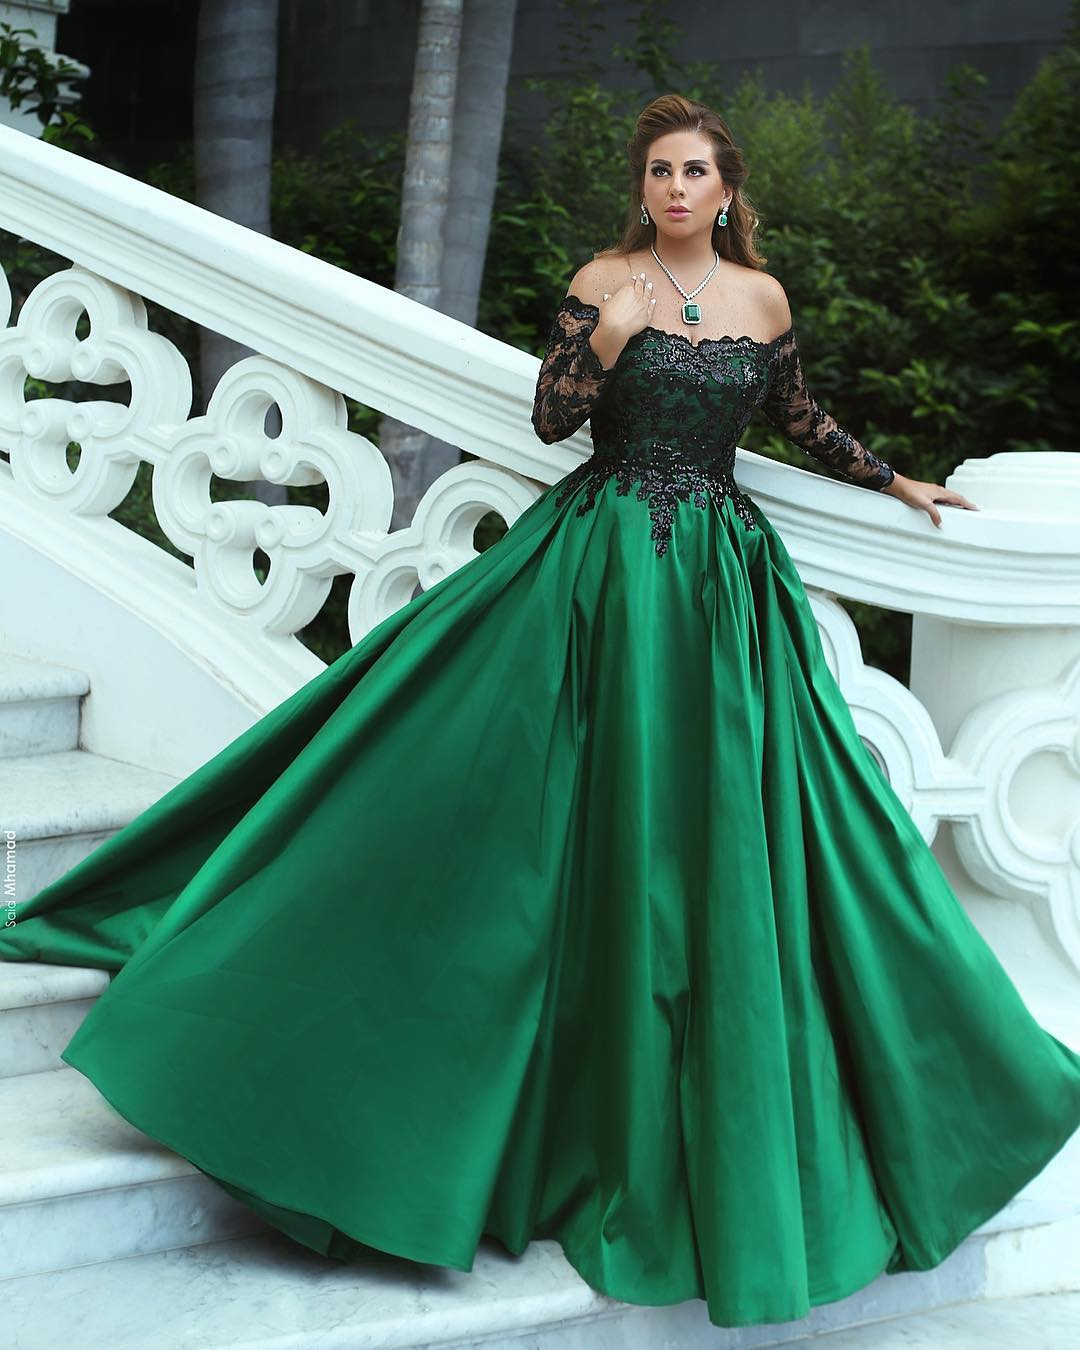 Off The Shoulder Prom Dress Lace Applique Prom Dress